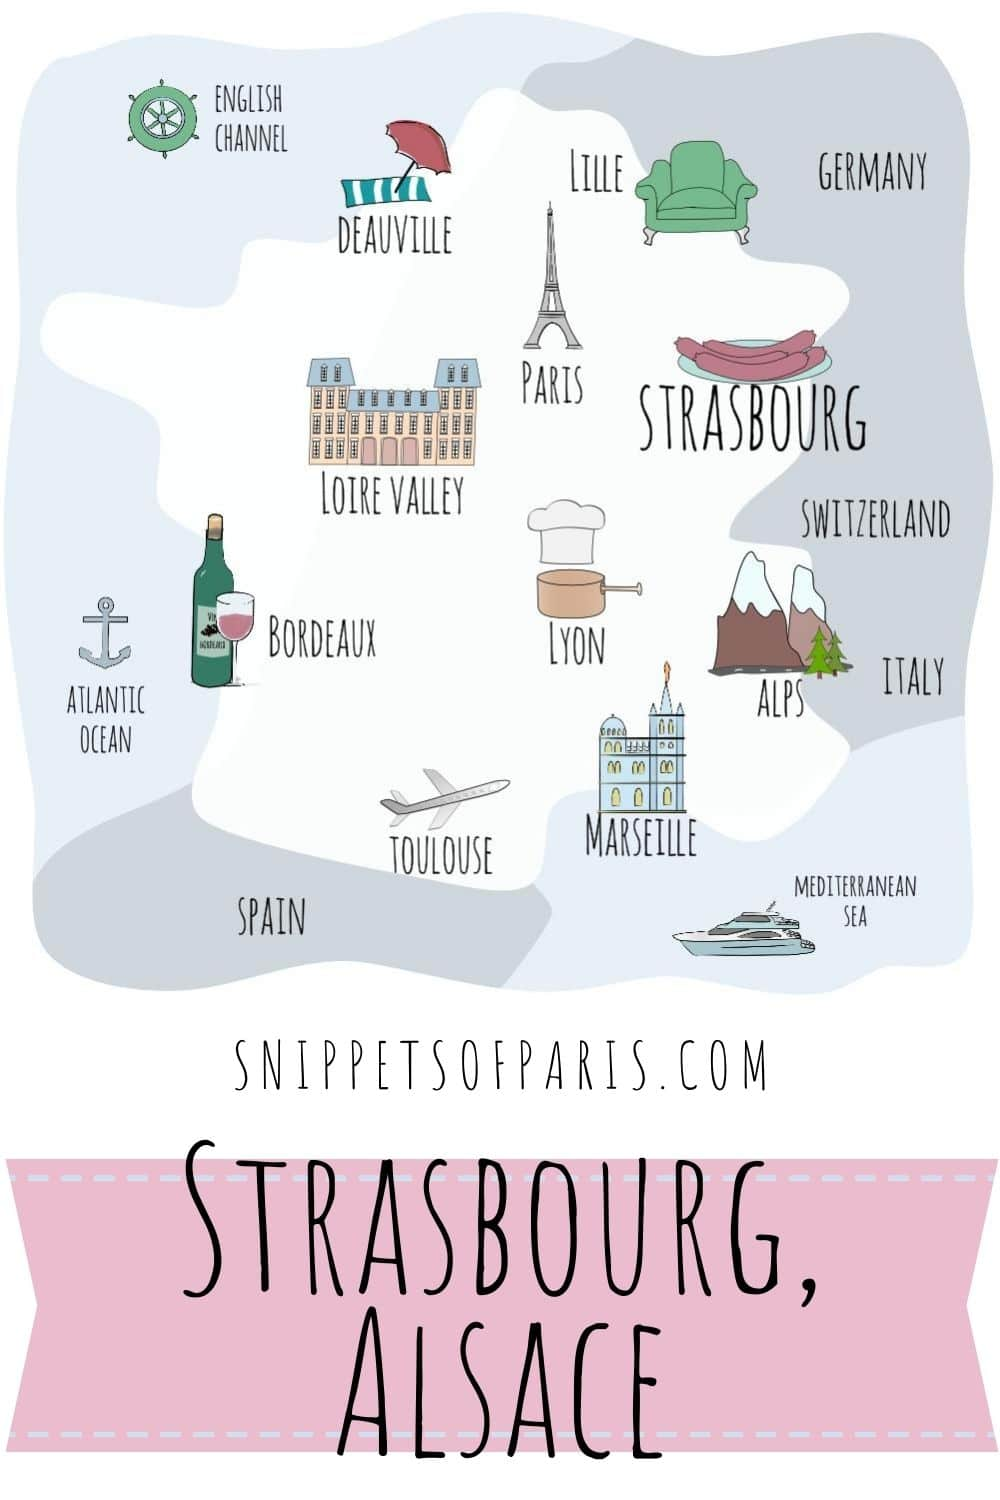 10 Things to do in Strasbourg France: History, Culture, and Food